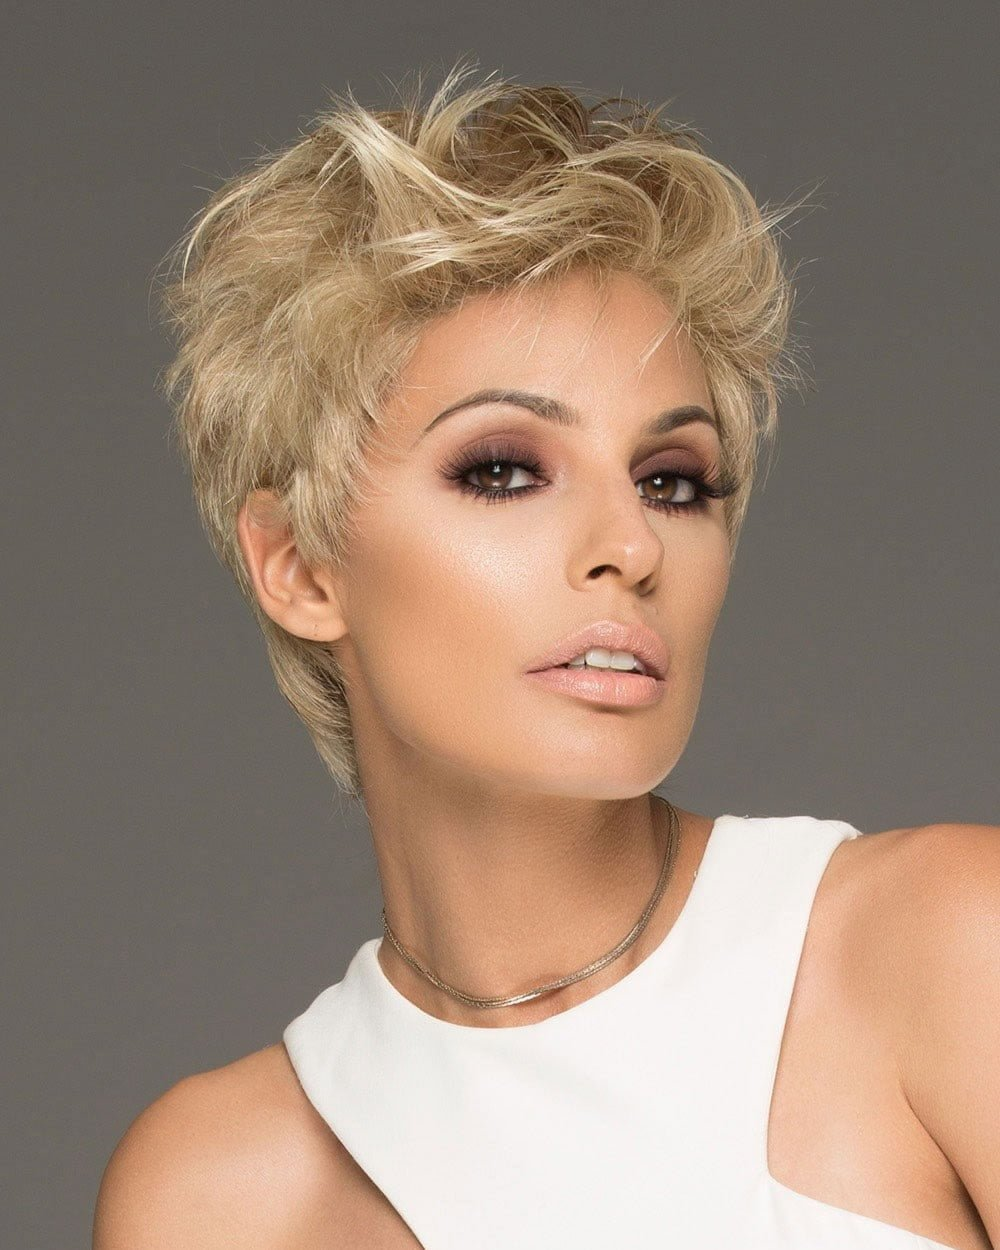 Free 25 Ultra Short Hairstyles Pixie Haircuts Hair Color Wallpaper